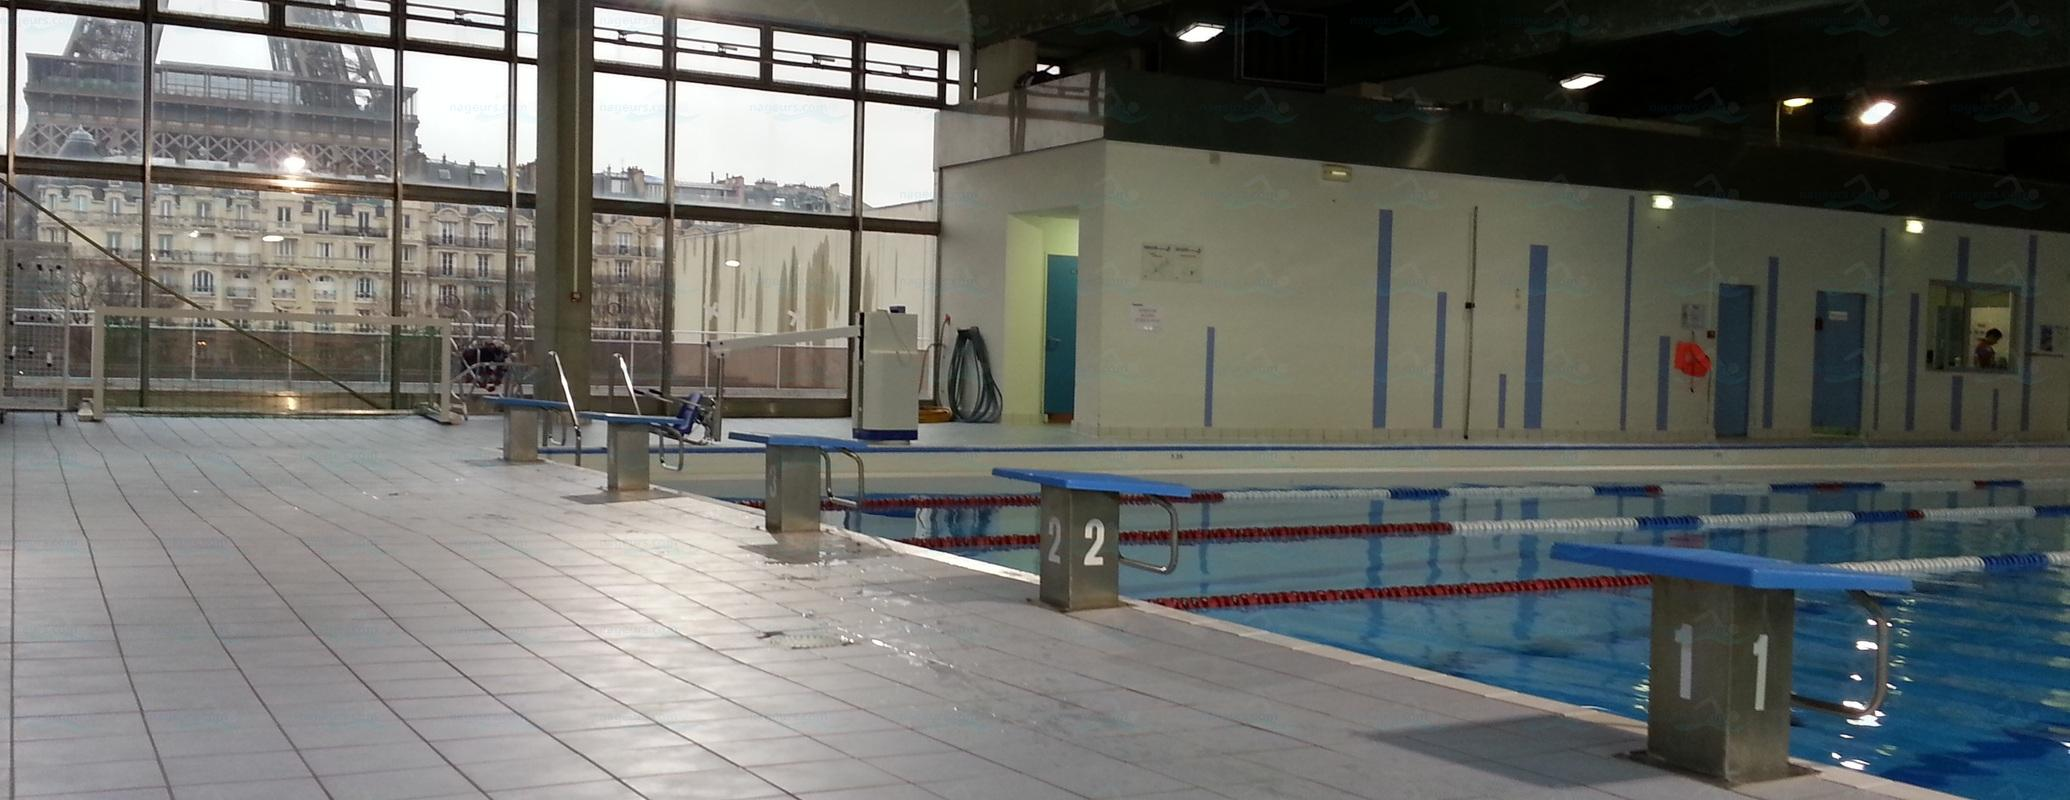 Photos piscine emile anthoine for Piscine beaujon